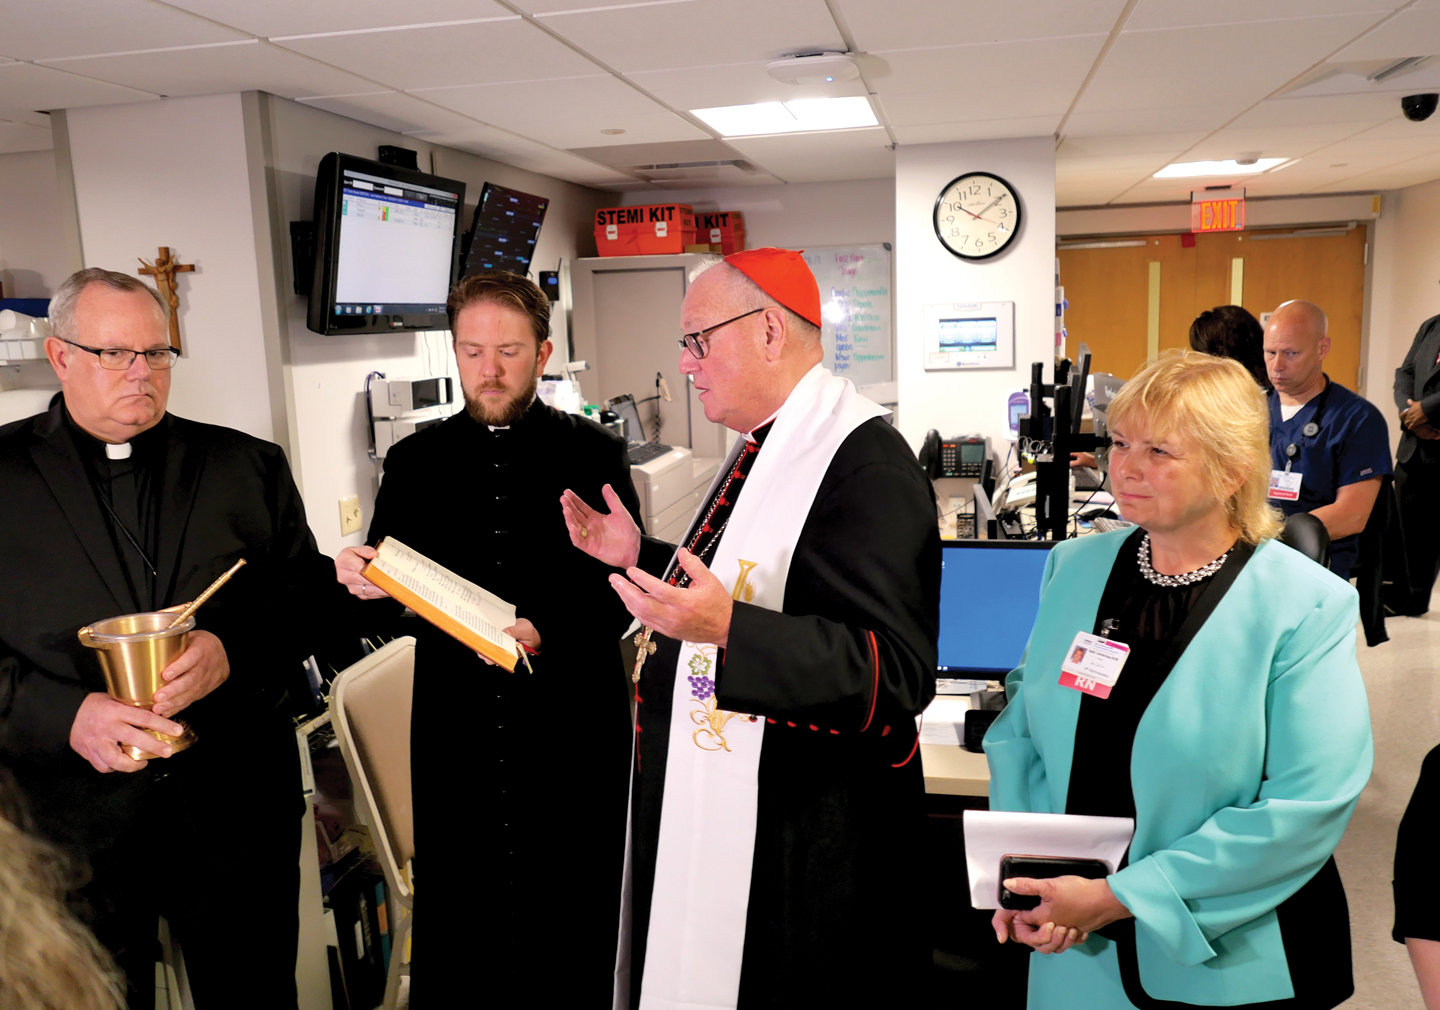 Cardinal Dolan leads prayers during the blessing and dedication of a new temporary emergency department at Bon Secours Community Hospital in Port Jervis Aug. 28. At far right is Sophie Crawford-Rosso, vice president, hospital administrator at Bon Secours. At far left is Father Martin Rooney, director of mission for Bon Secours Charity Health System. Next to him is Father Stephen Ries, the cardinal's priest secretary.